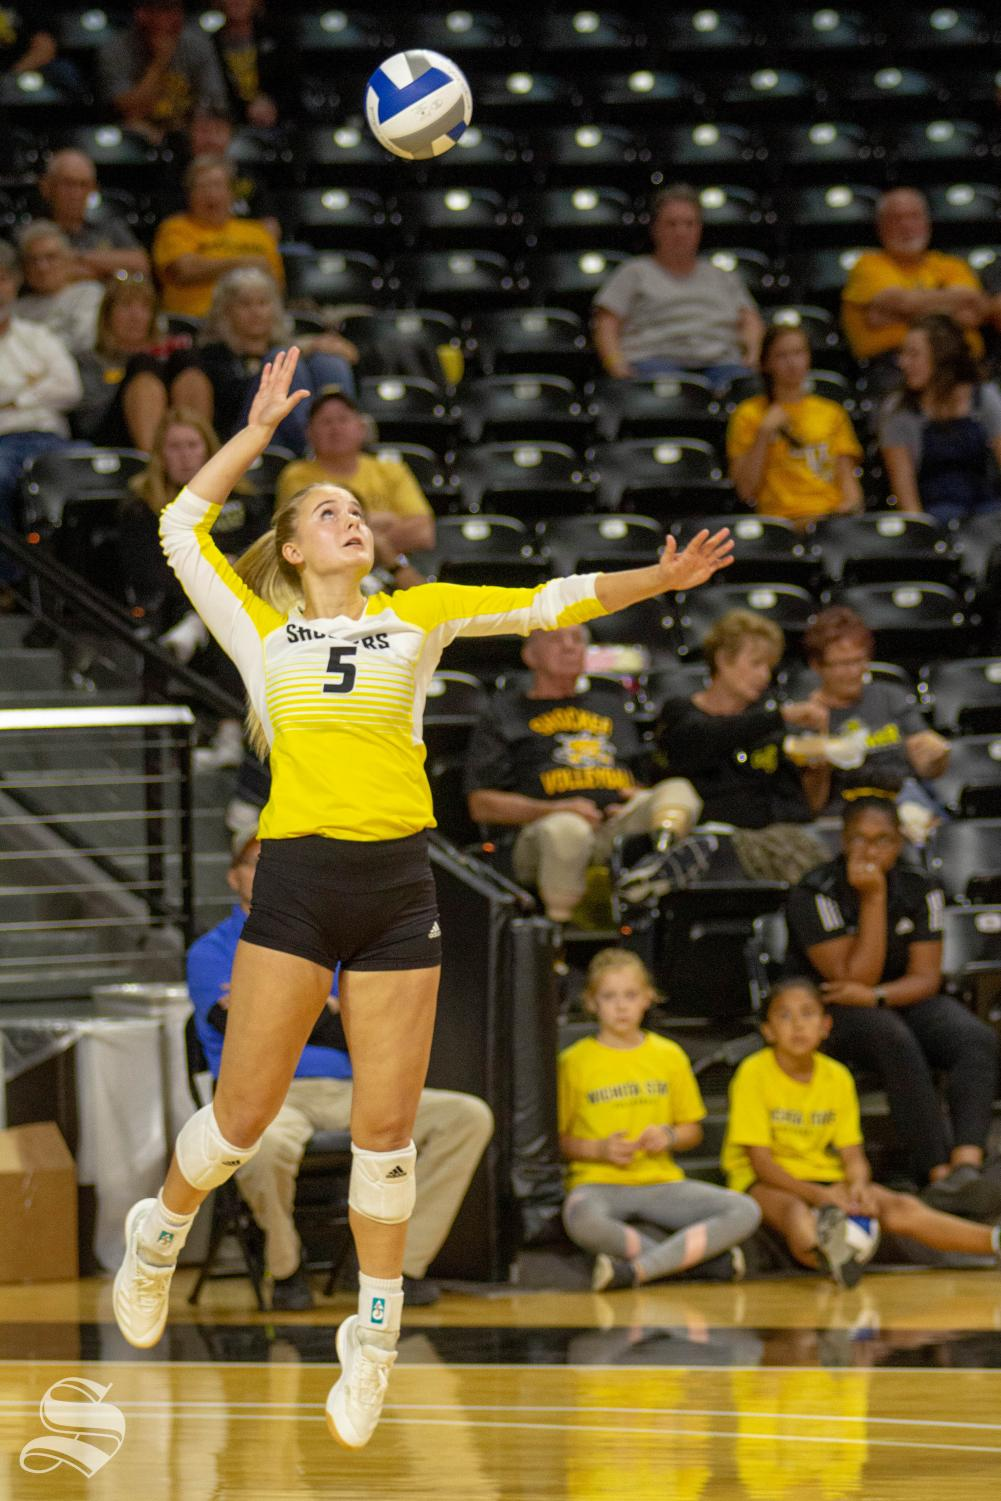 Wichita+State+freshman+Kayce+Litzau+serves+the+ball+during+the+Shockers%27+home+opener+against+BYU.